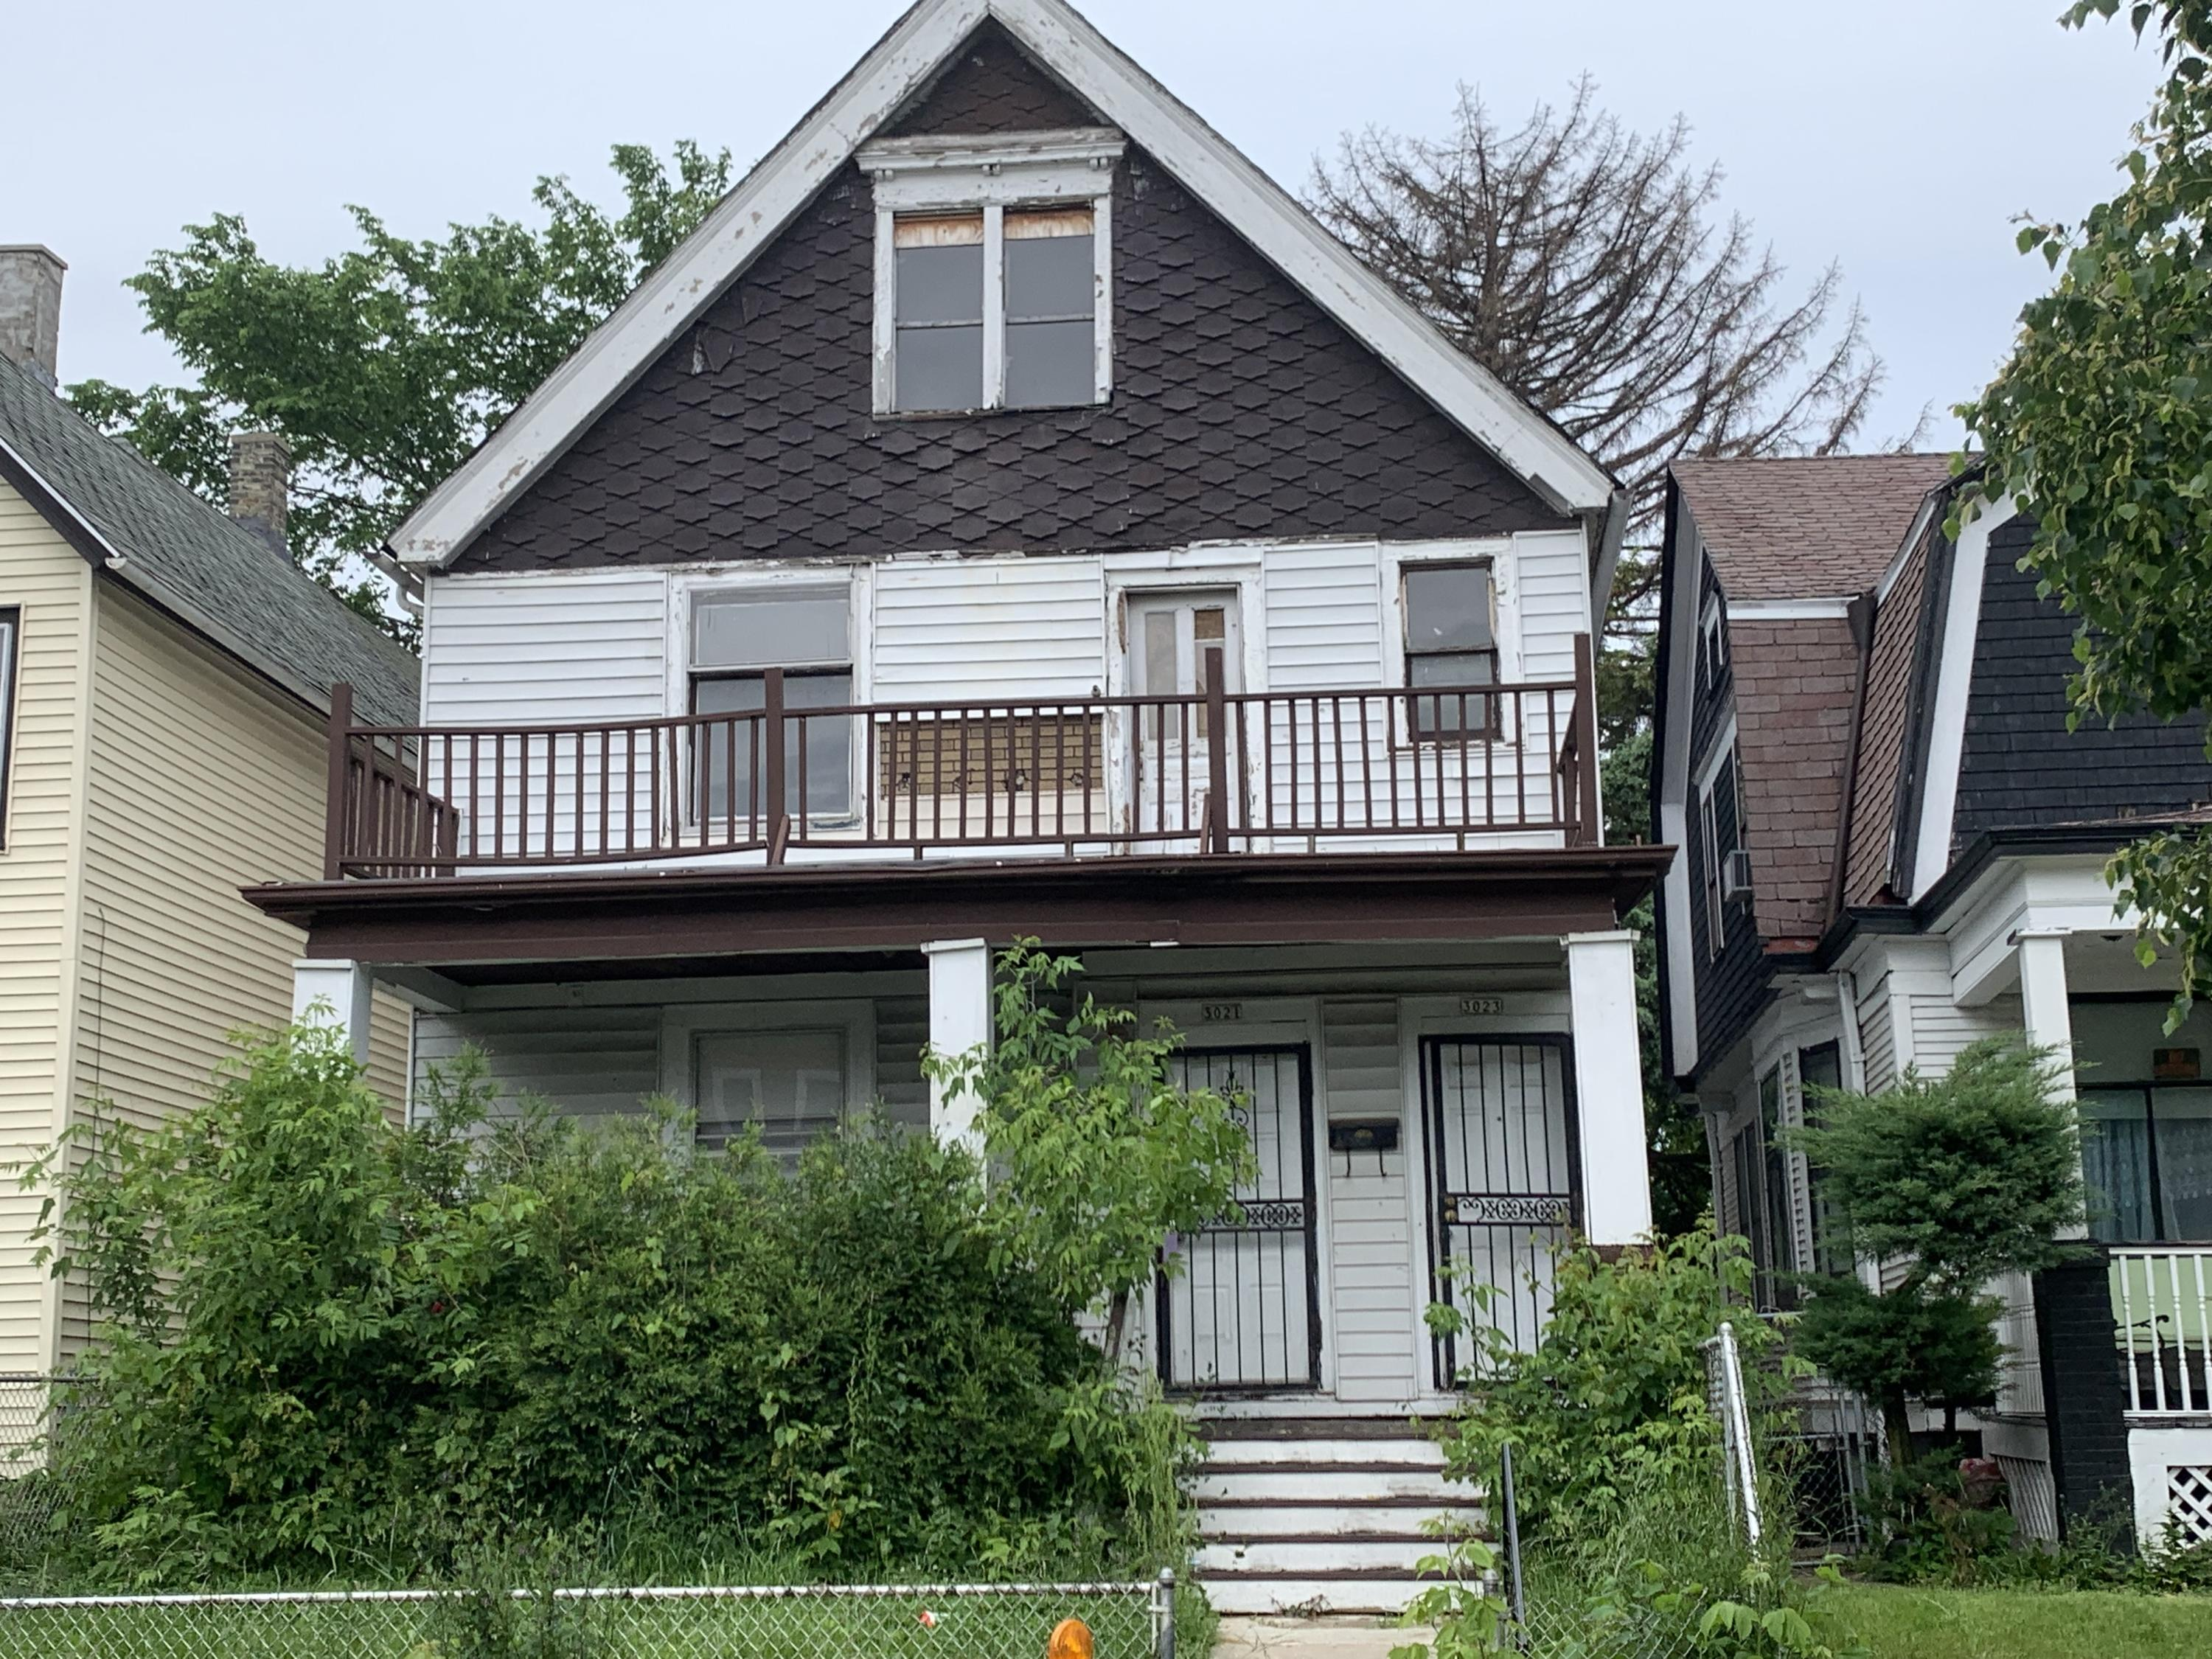 3021 21st St, Milwaukee, Wisconsin 53206, 2 Bedrooms Bedrooms, 6 Rooms Rooms,1 BathroomBathrooms,Two-Family,For Sale,21st St,1,1643411